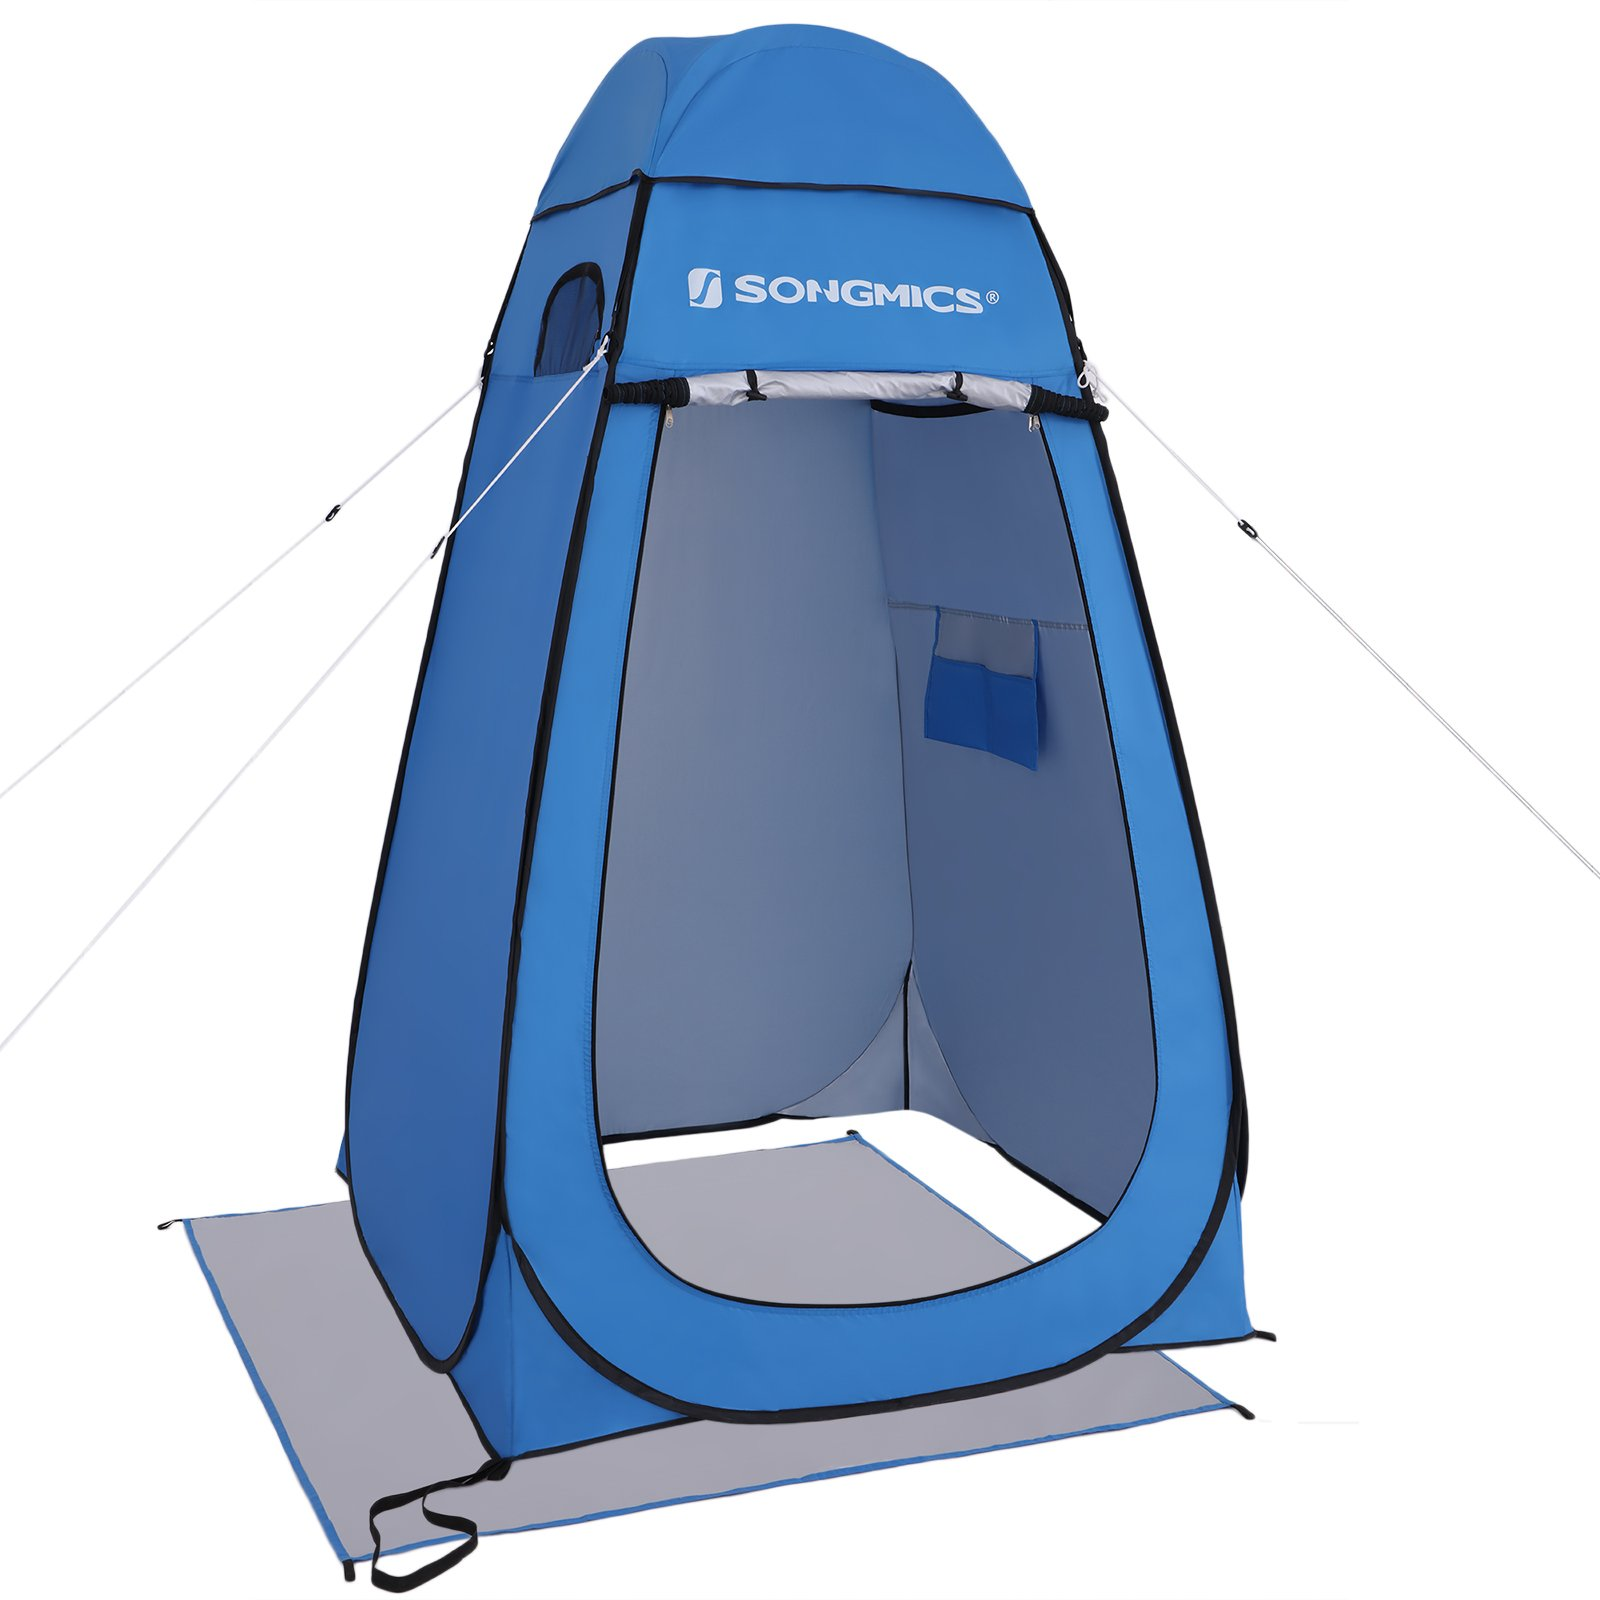 SONGMICS Portable Pop up Tent, Dressing Room Privacy Shelter, for Outdoor Camping Fishing Beach Shower Toilet, with Zippered Carrying Bag, Blue UGPT01BU by SONGMICS